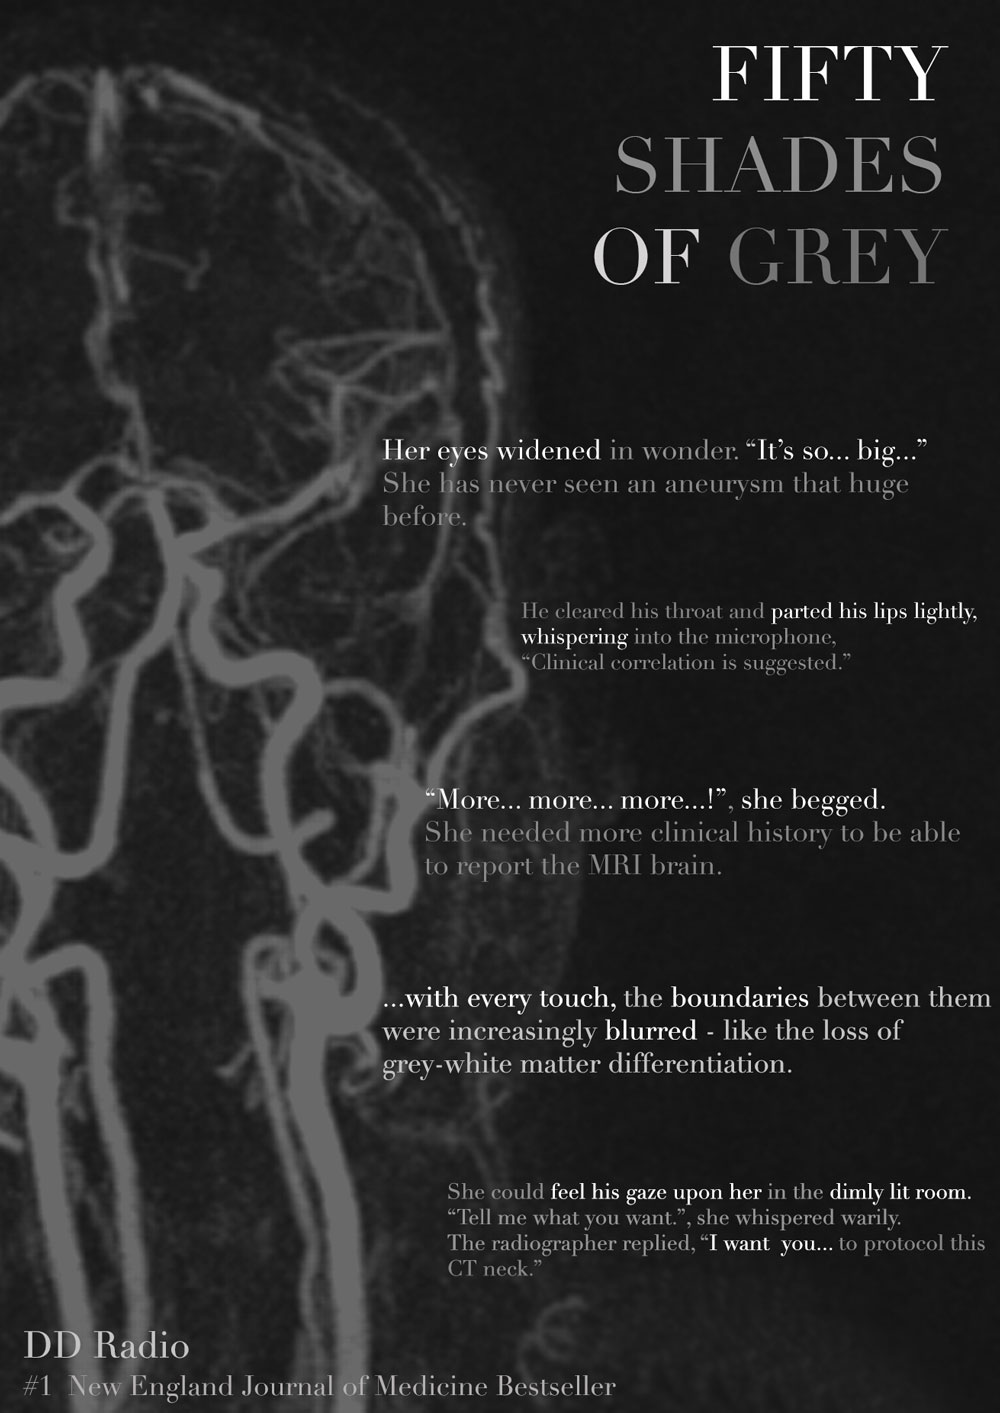 Shads Of Gray Fifty Shades Of Grey Radiology Edition Gomerblog